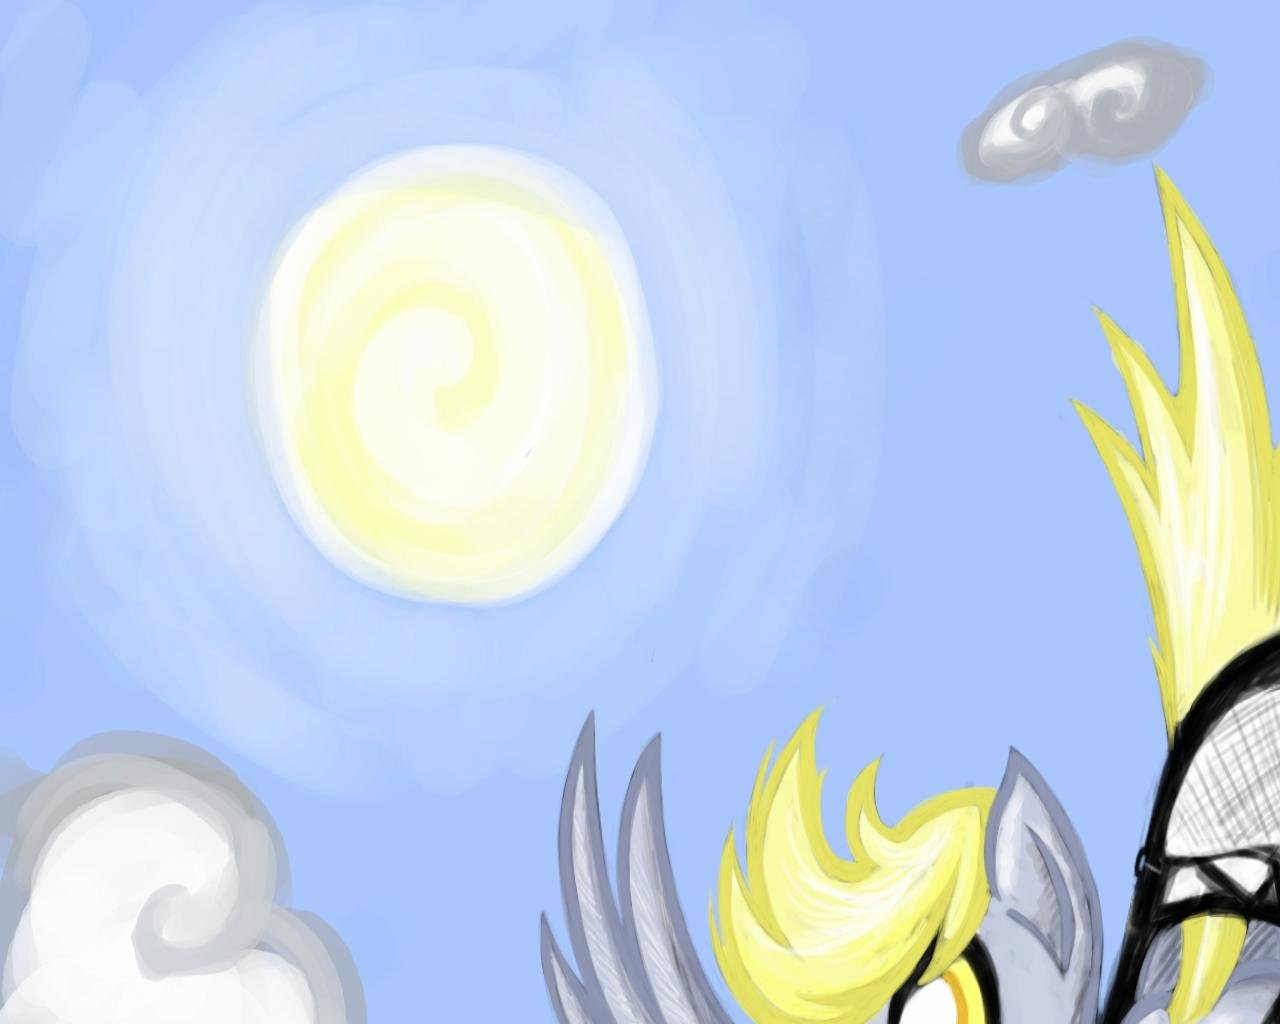 Free Derpy Hooves High Quality Wallpaper ID154586 For Hd 1280x1024 Computer